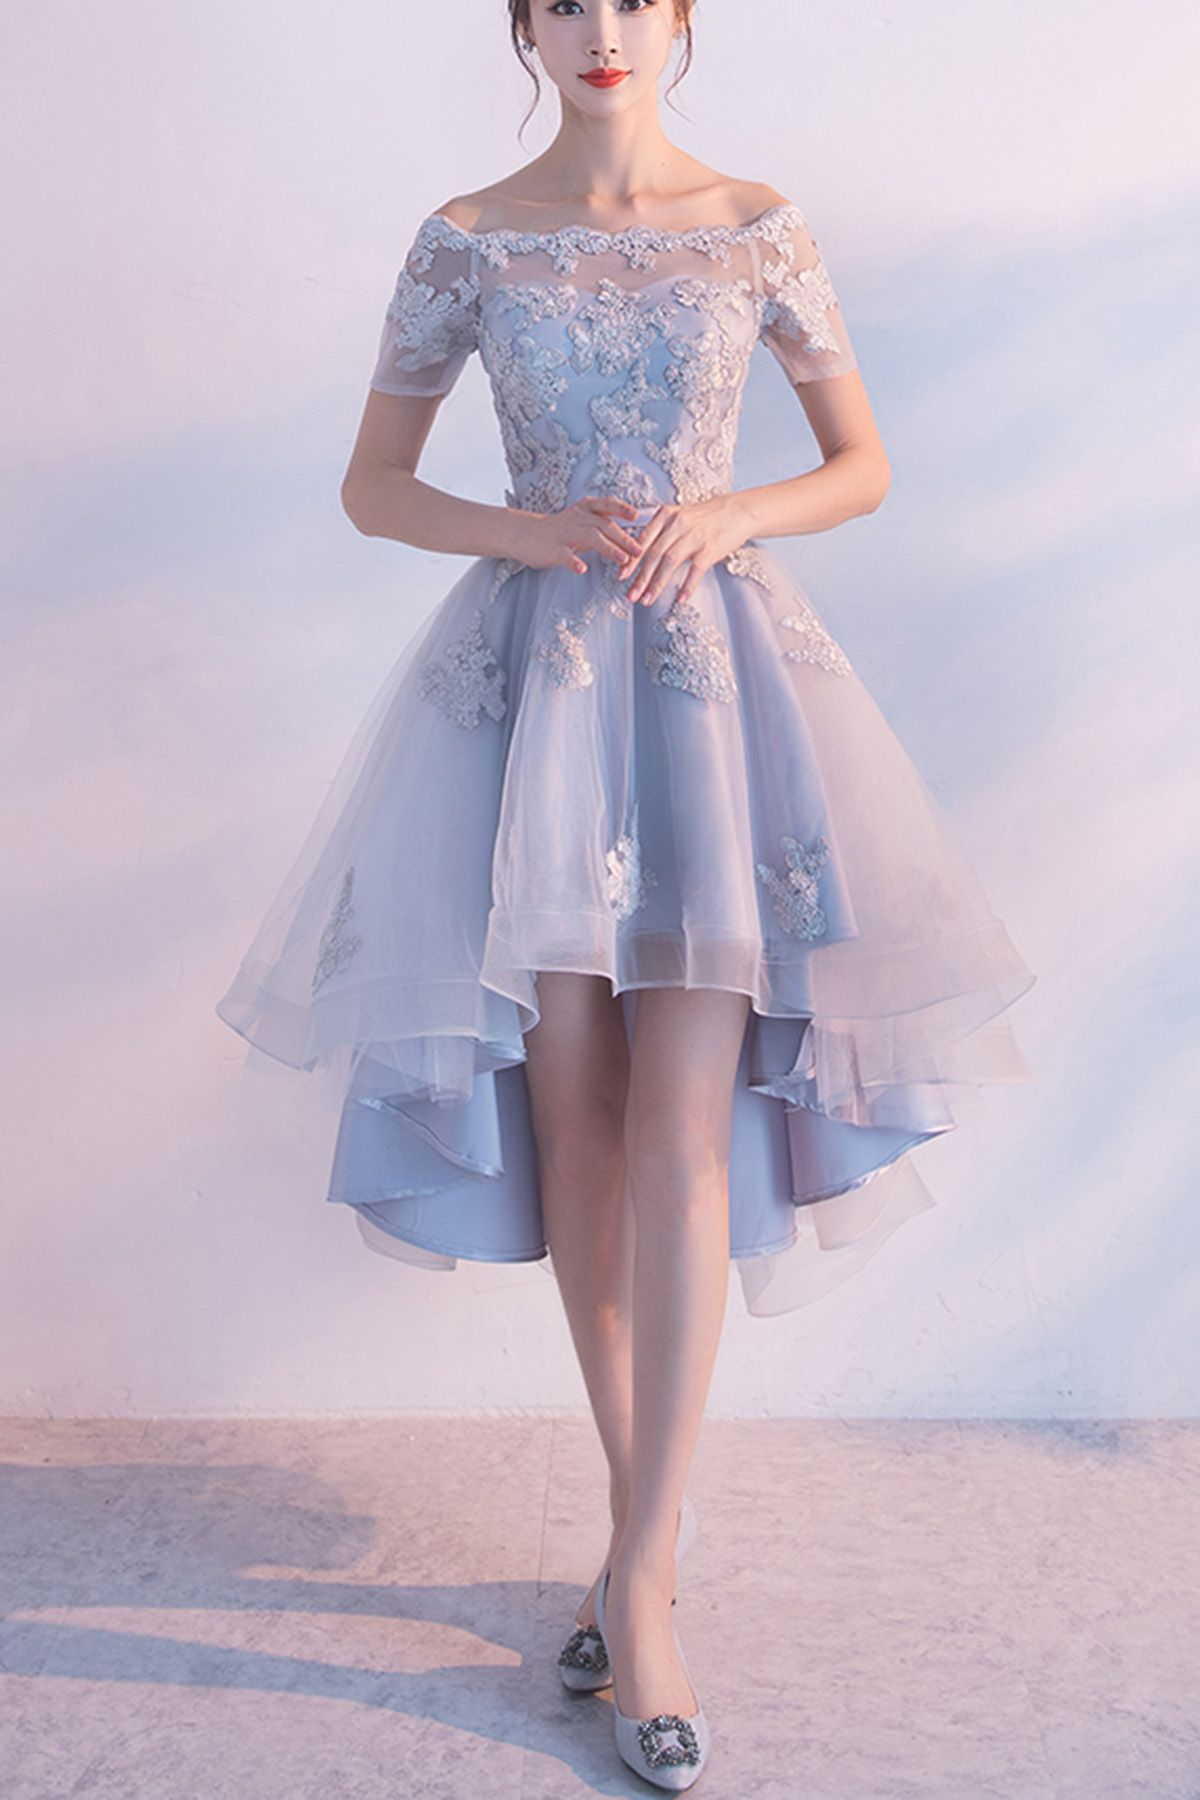 9718ed1ed2d Hot Sale Short Sleeve Dresses Short Light Blue Prom Homecoming Dresses With  Bandage Lace Up High-Low Fine Homecoming Dresses